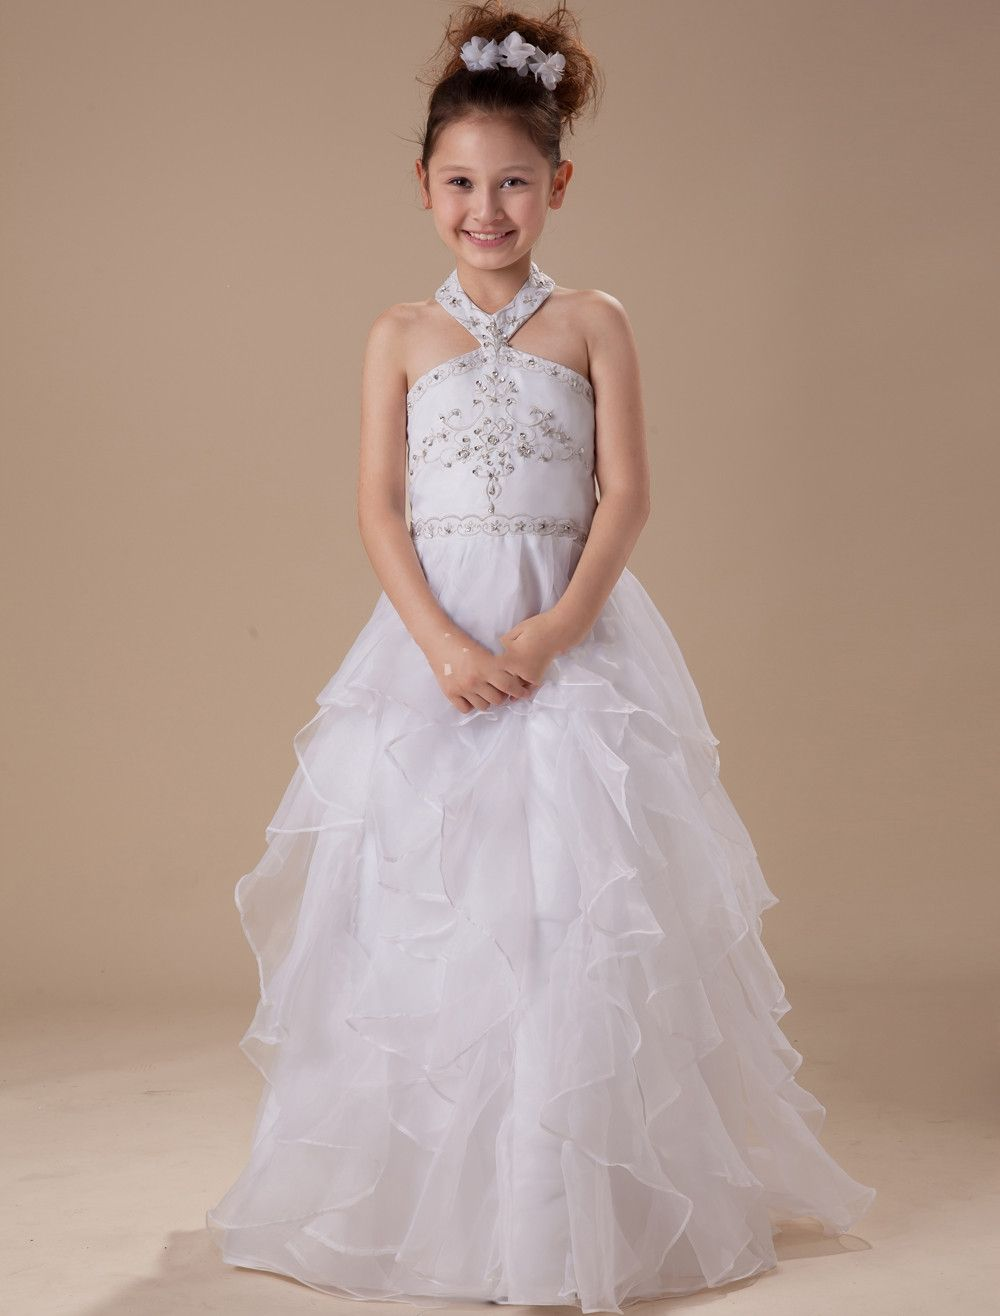 hater organza satin white kid dresses for wedding flower girl dresses pinterest girls. Black Bedroom Furniture Sets. Home Design Ideas